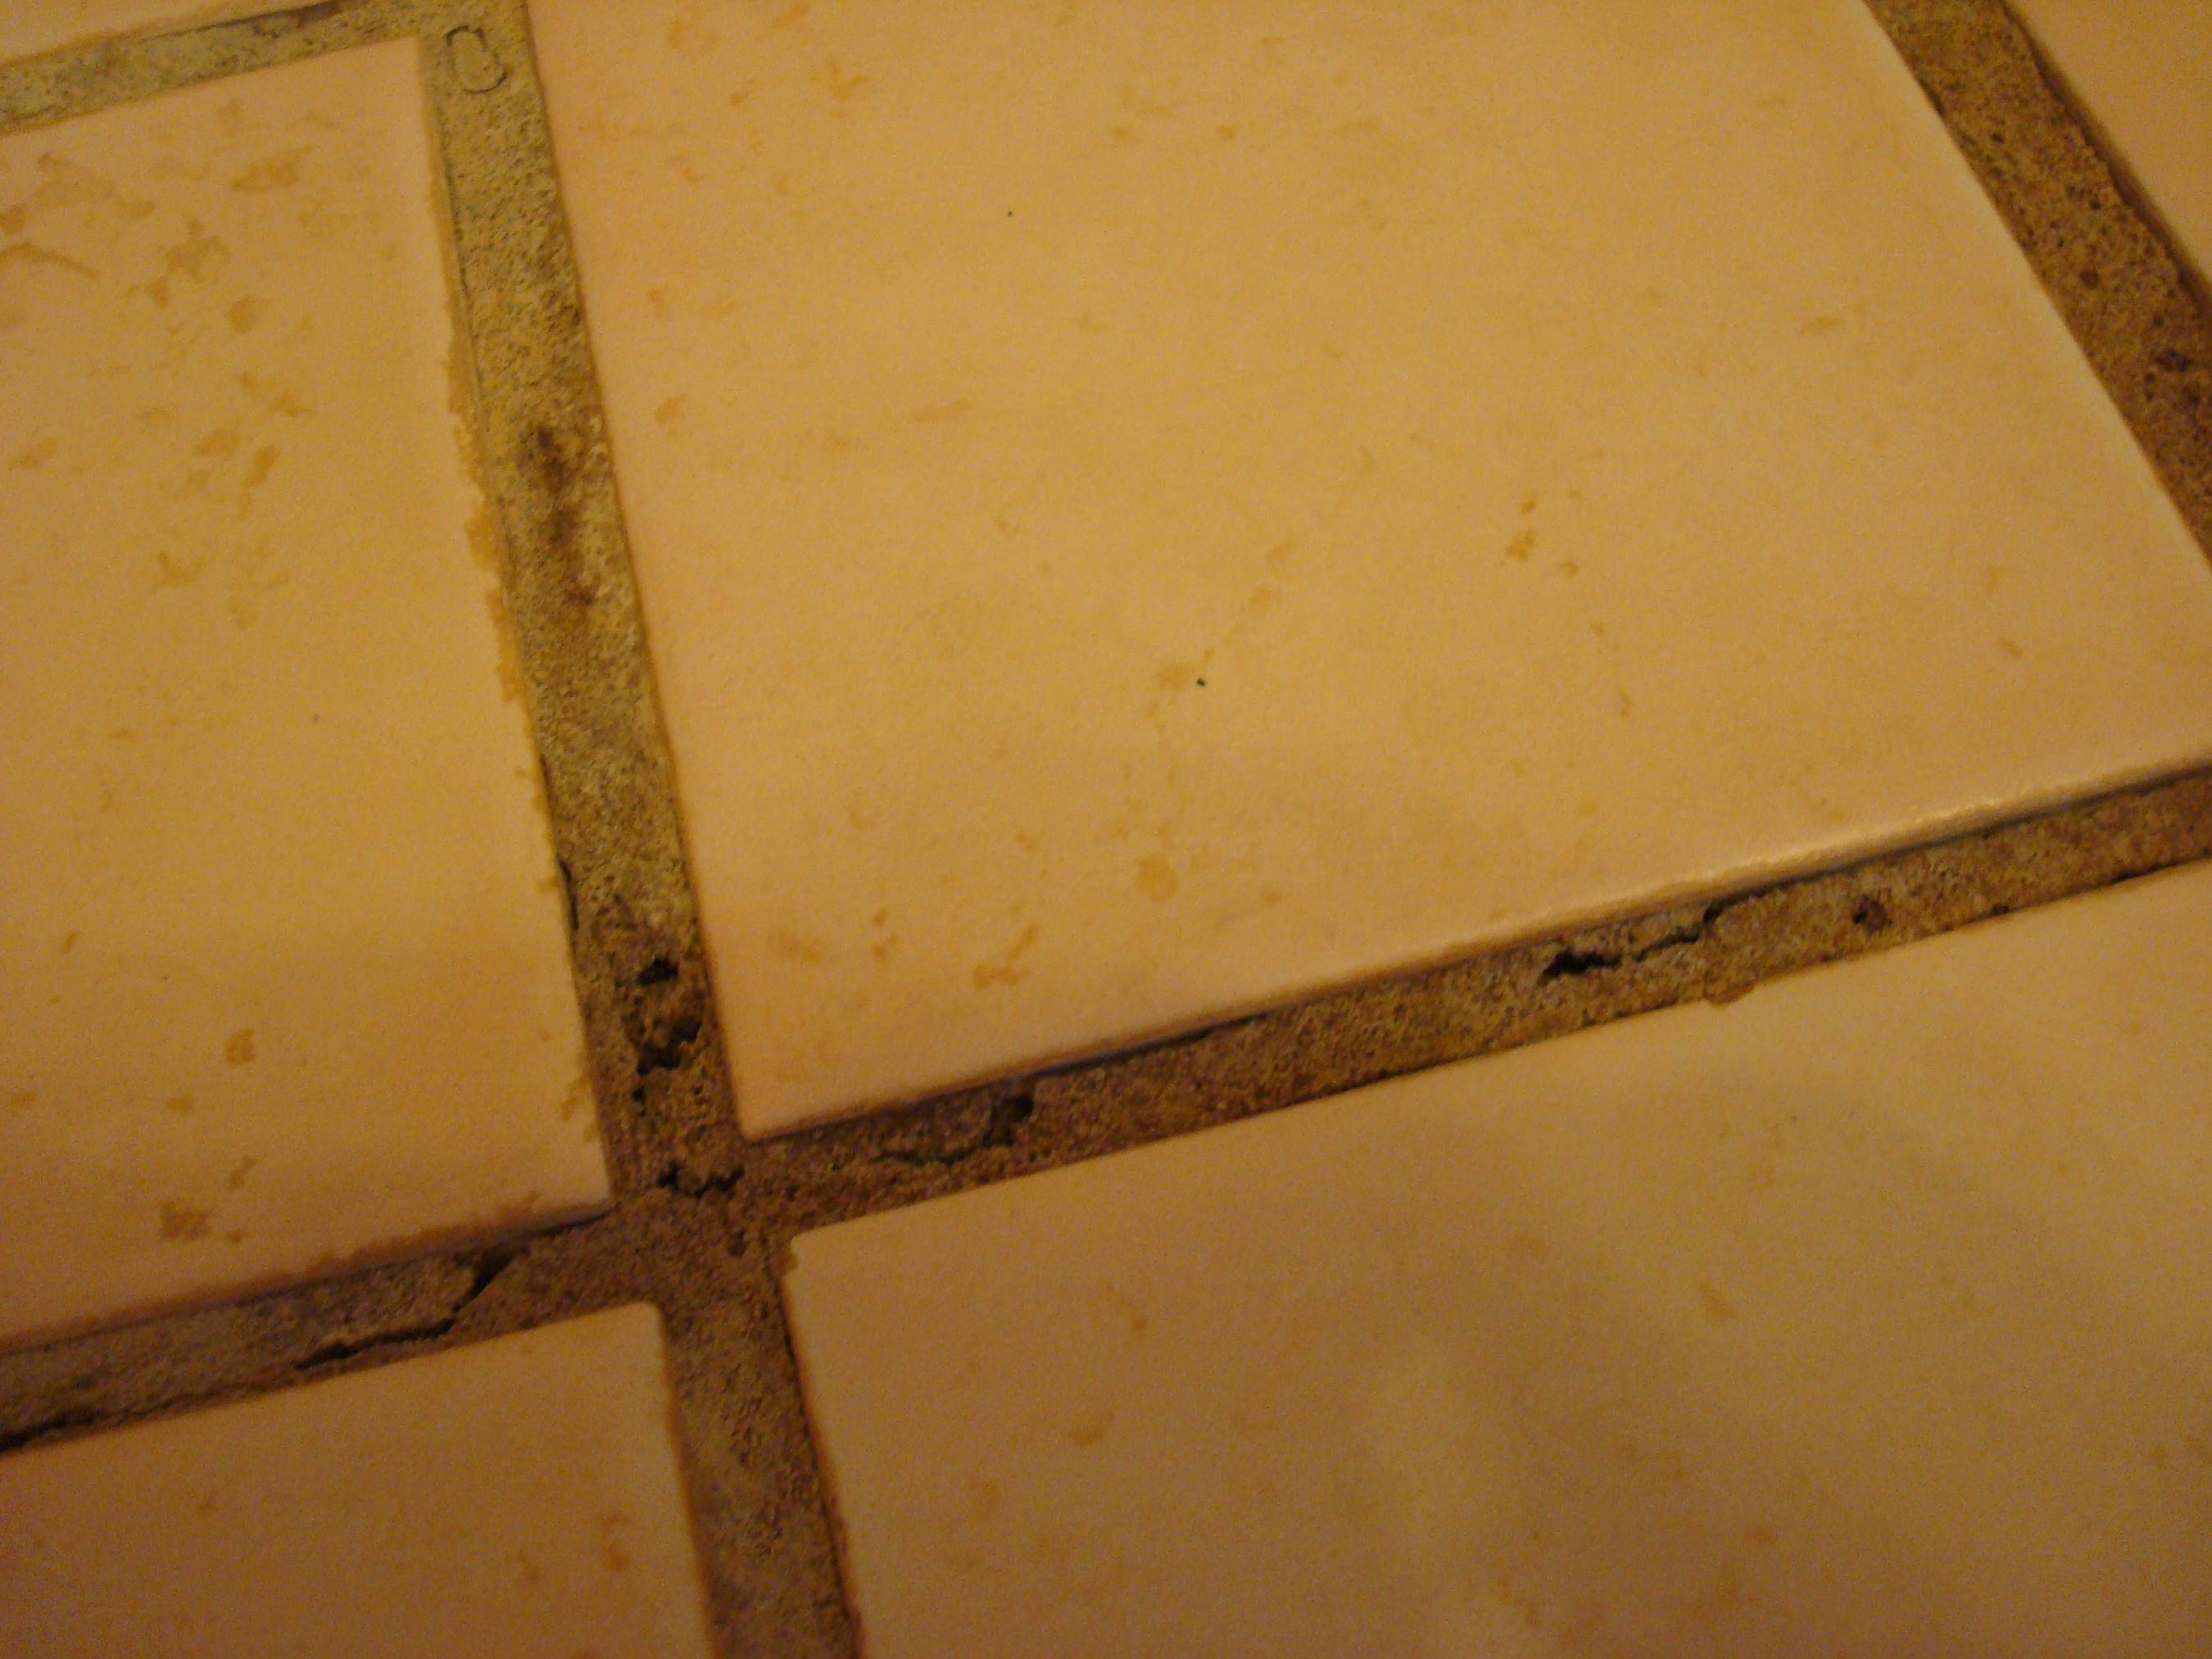 repair and prevent cracking grout